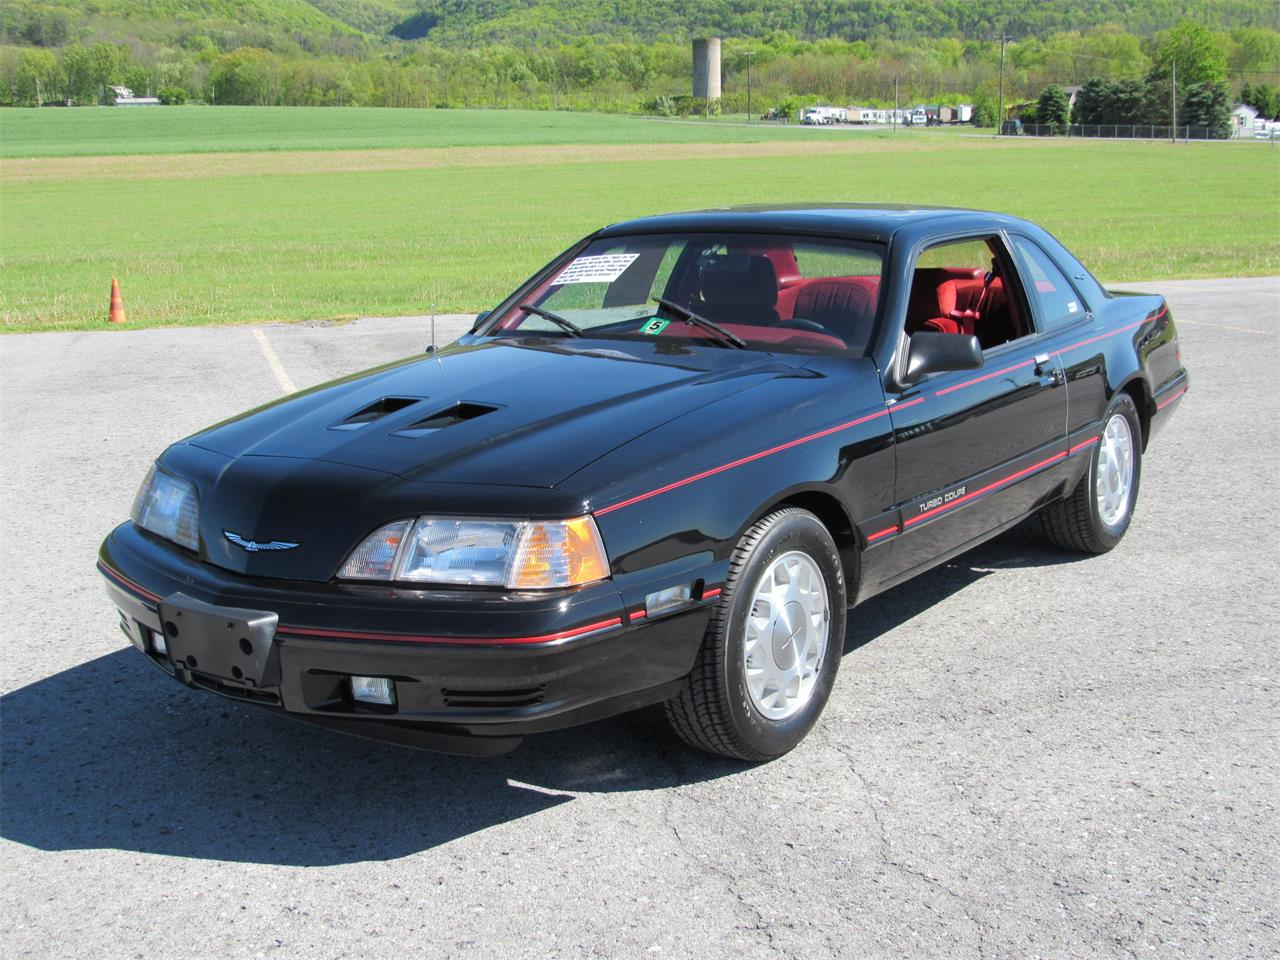 hight resolution of large picture of 88 thunderbird turbo coupe l3hx 1988 ford